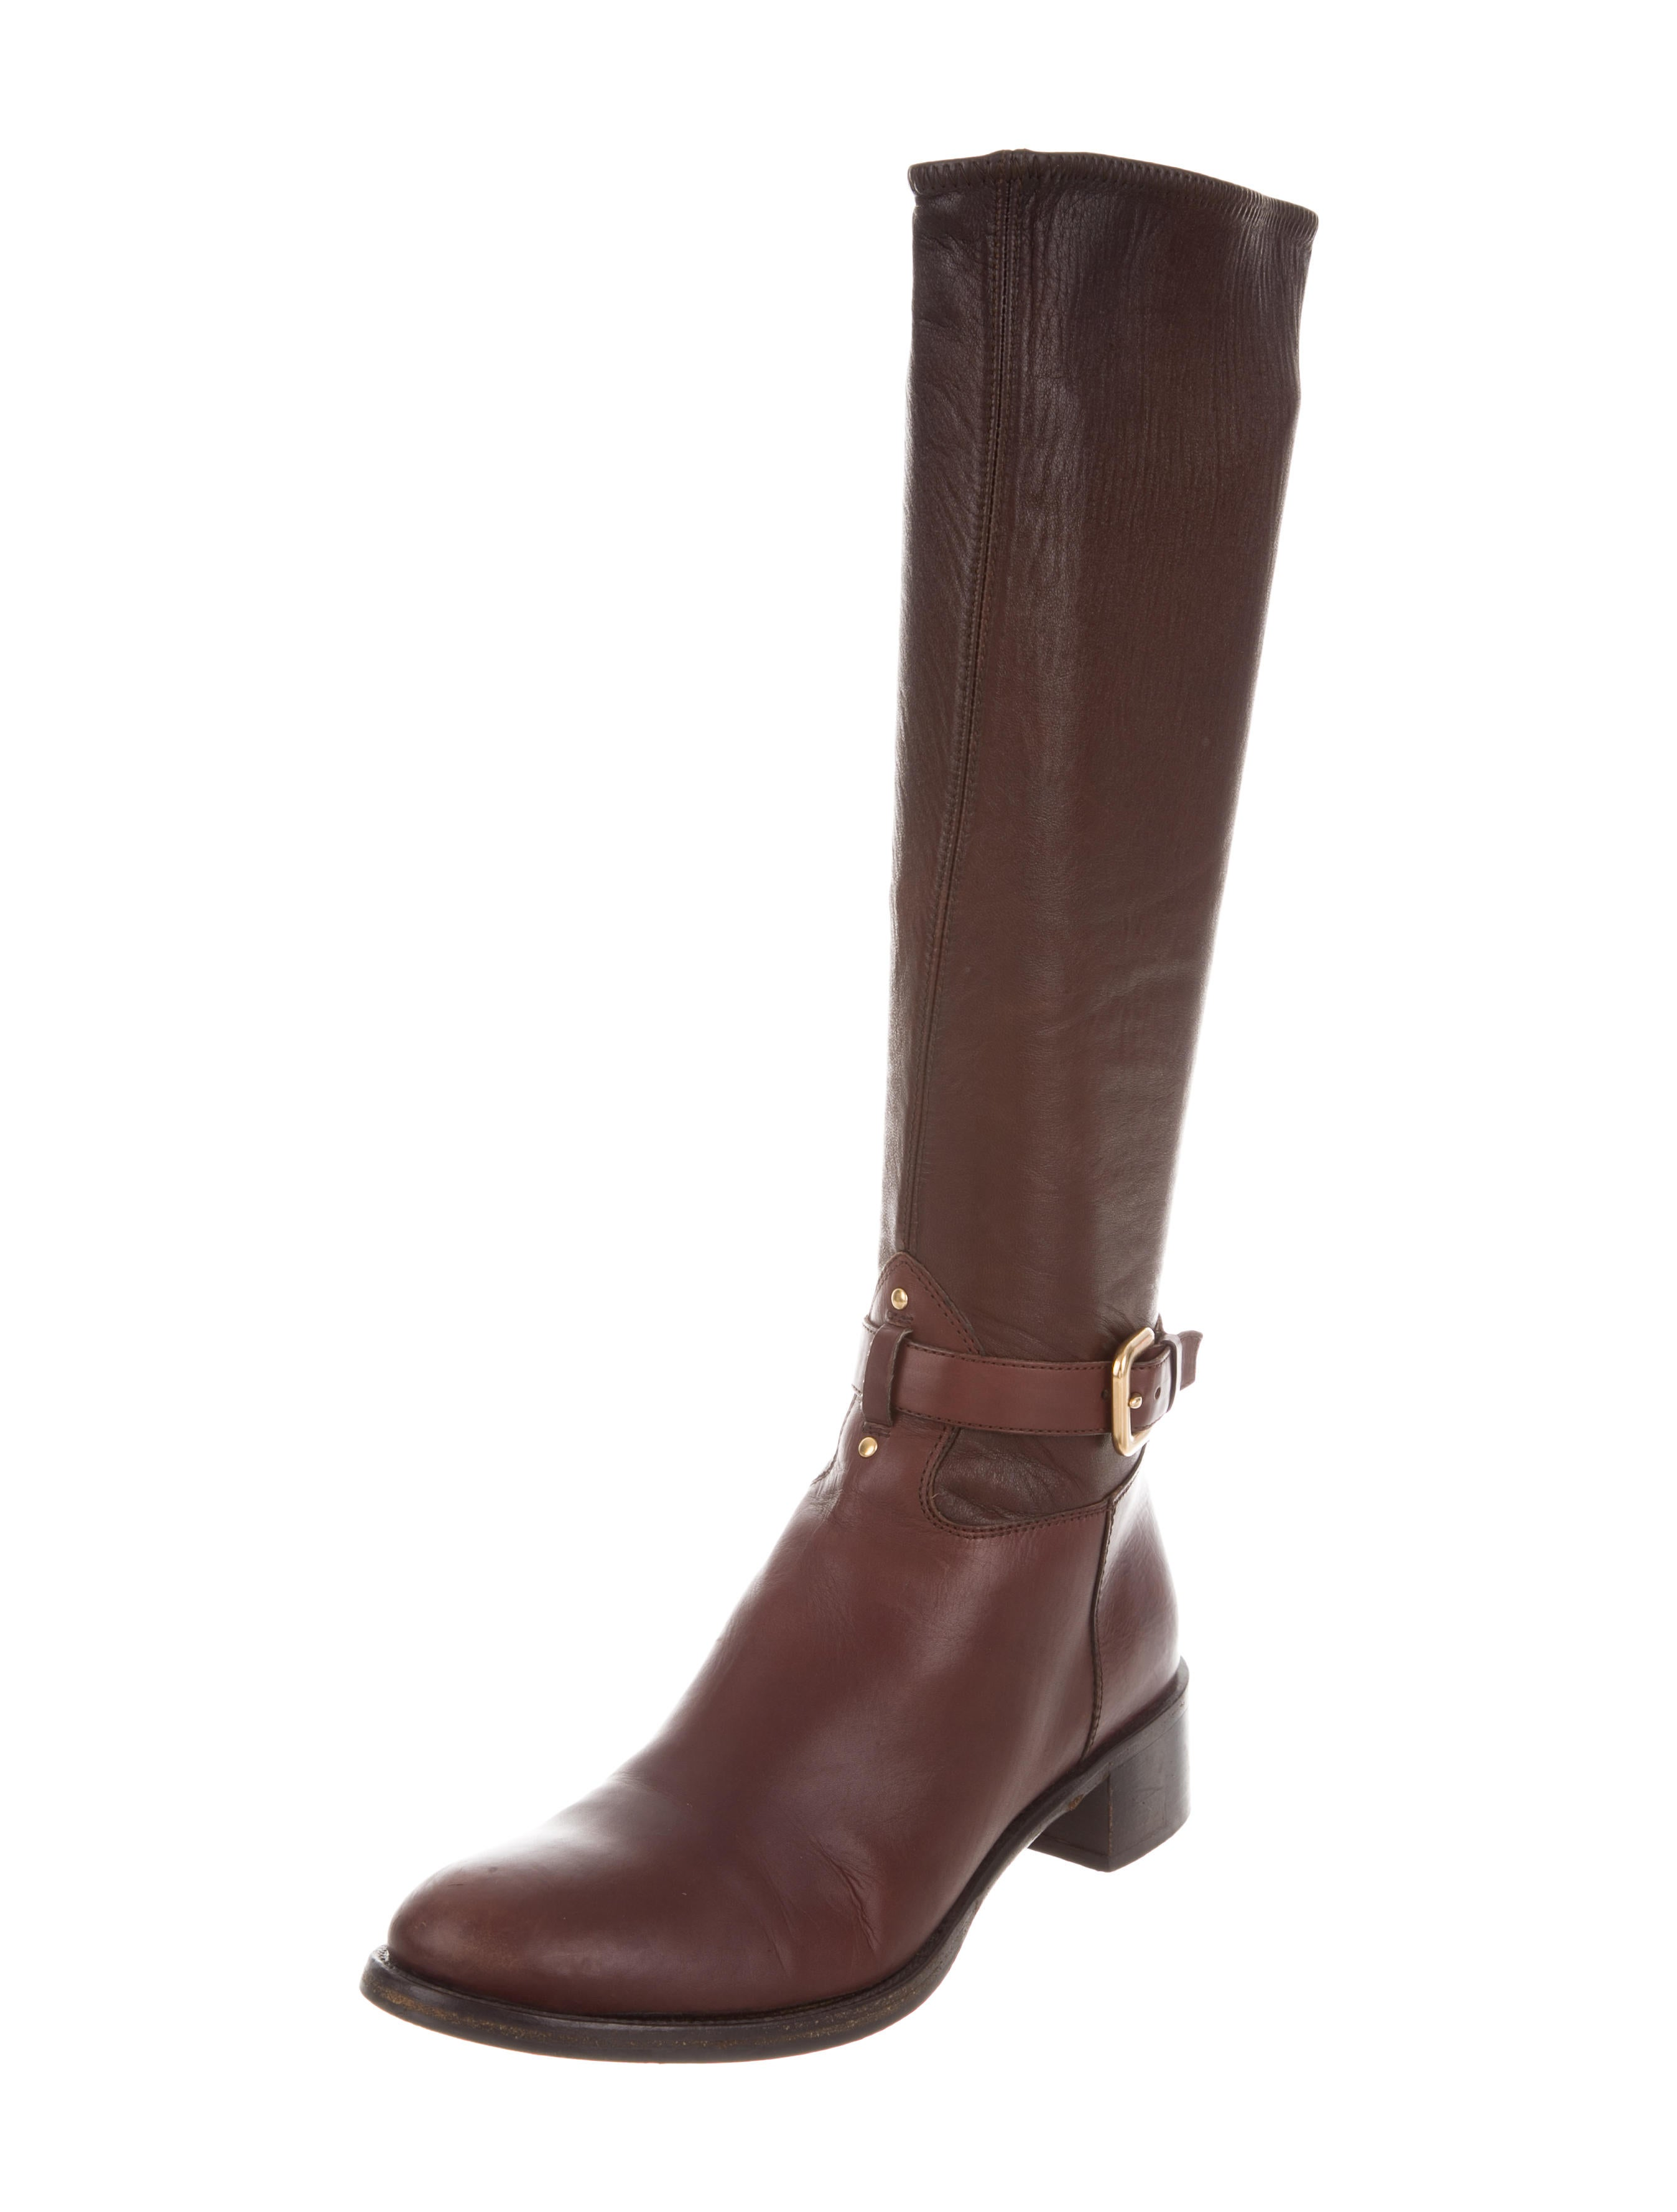 prada leather knee high boots shoes pra118411 the